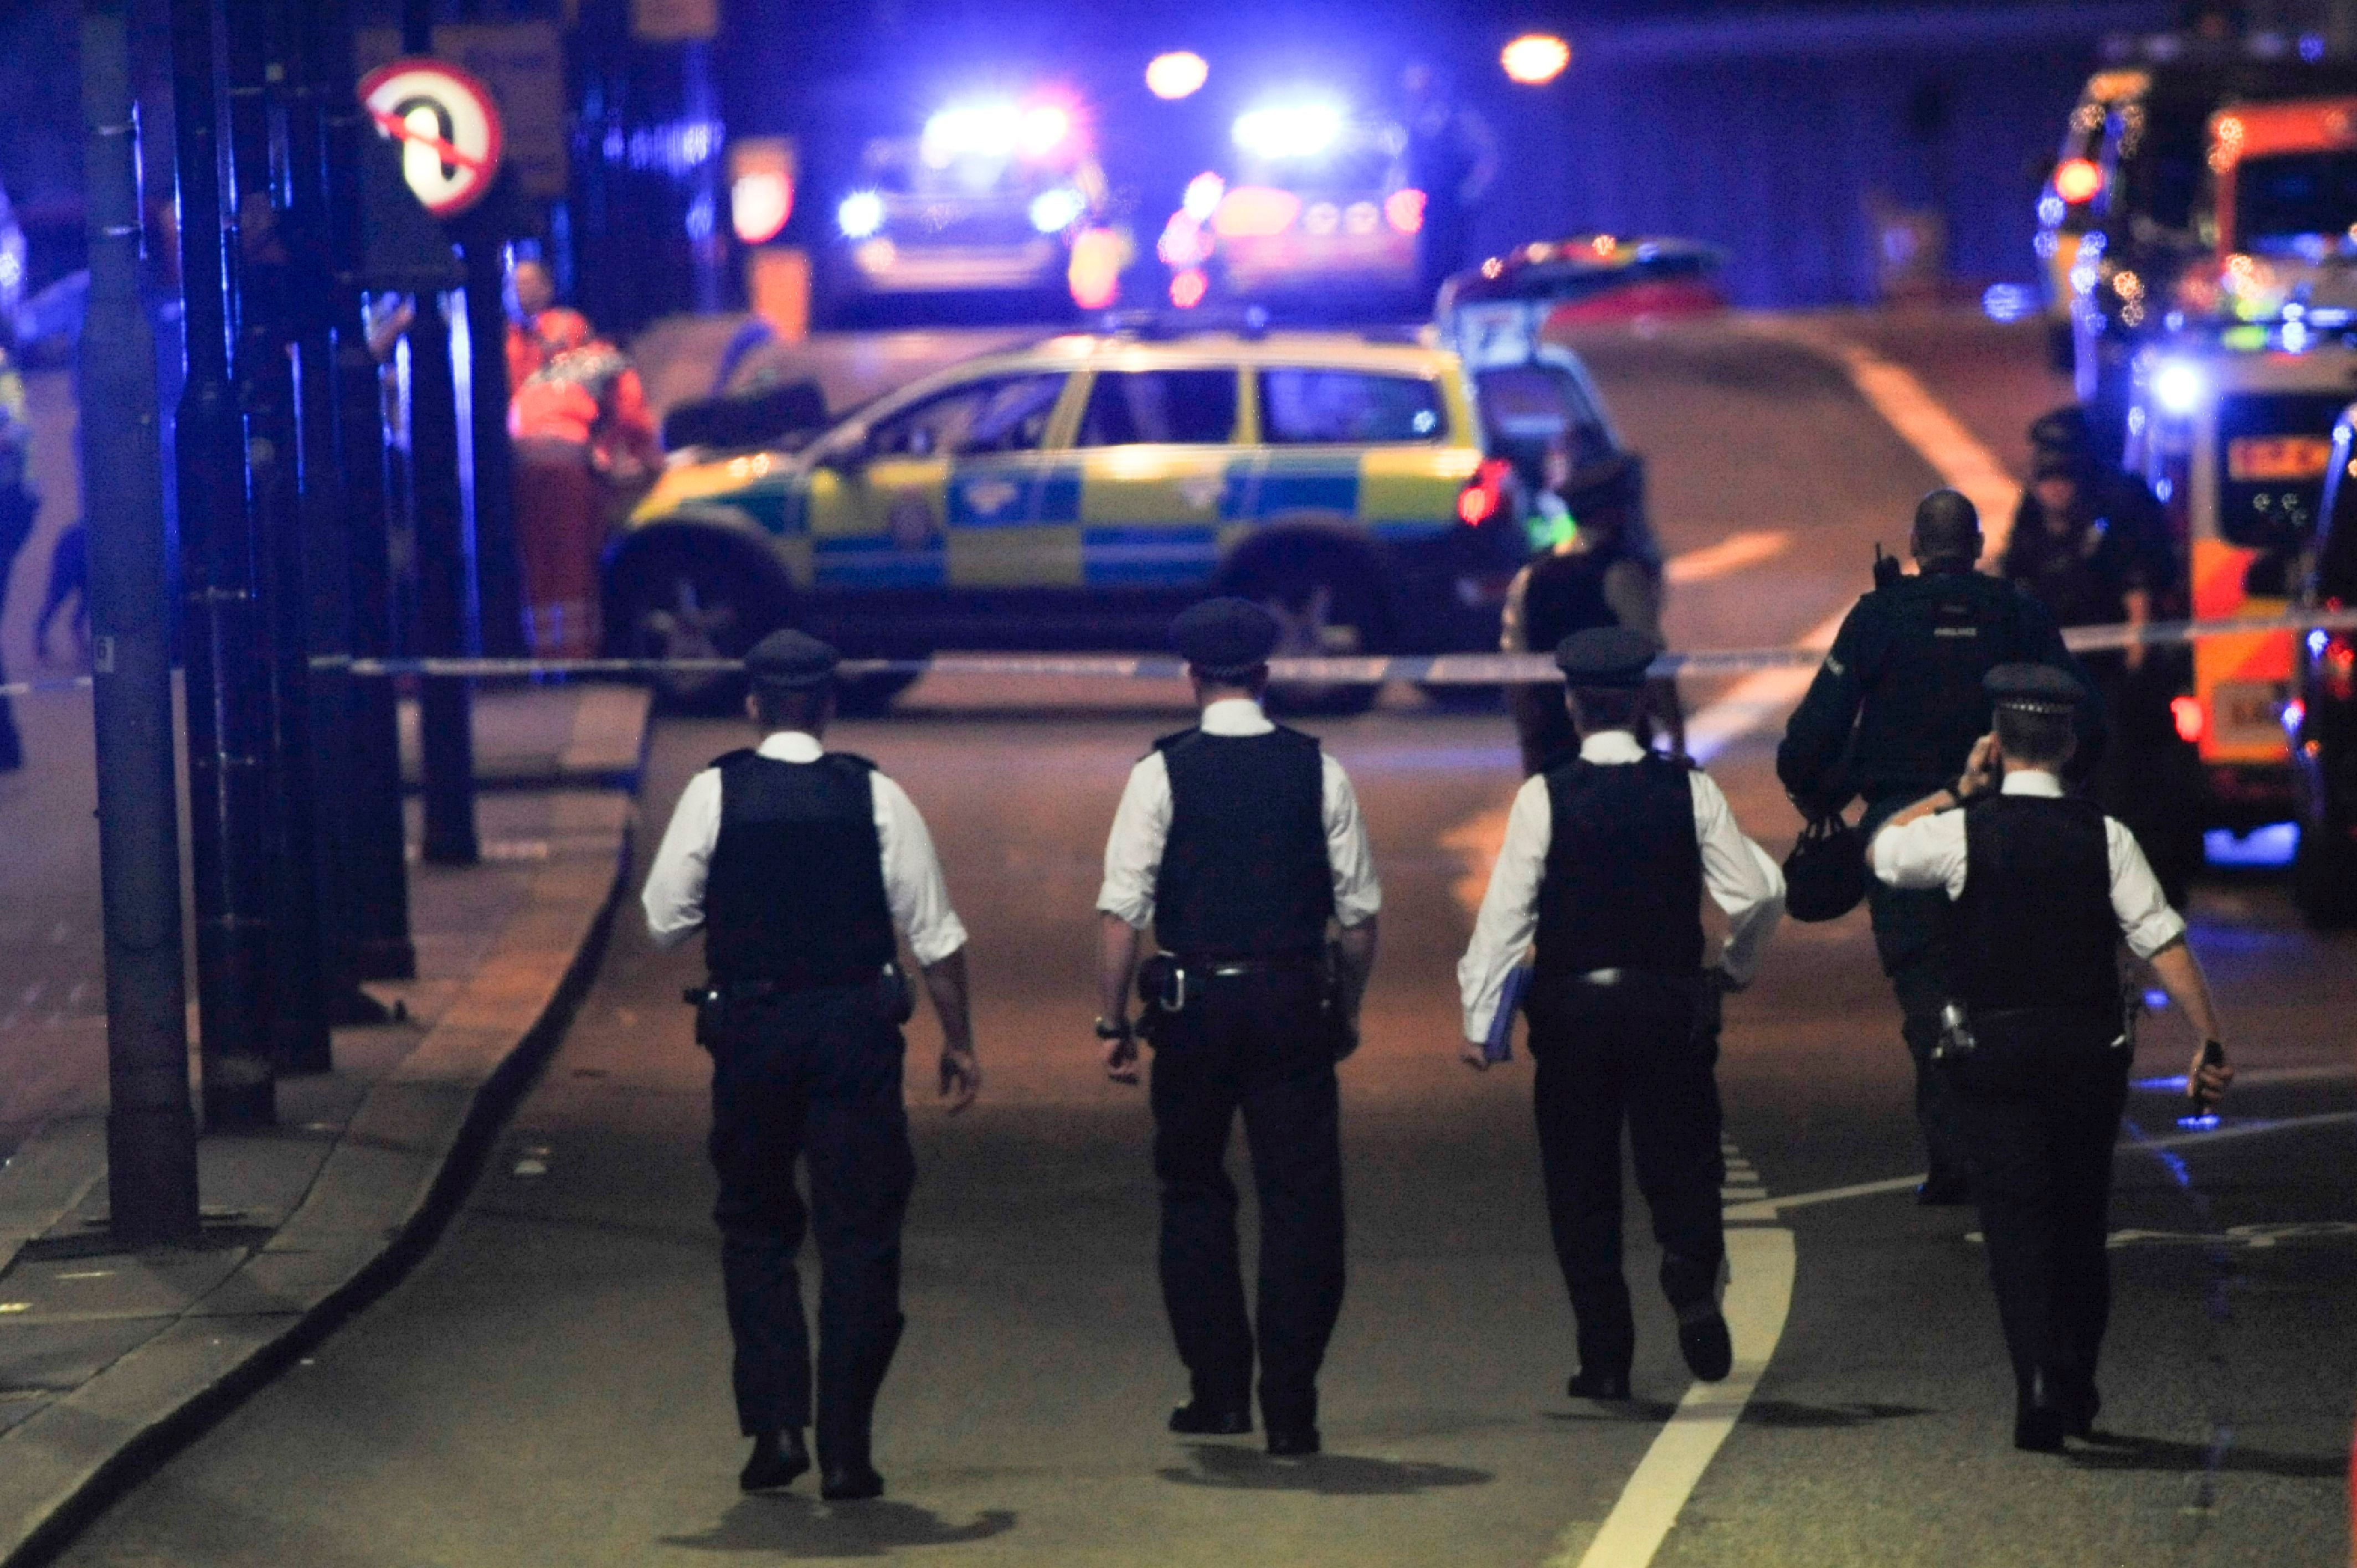 DANIEL SORABJI via Getty Images Terror-related arrests have surged in Britain following major attacks in London and Manchester